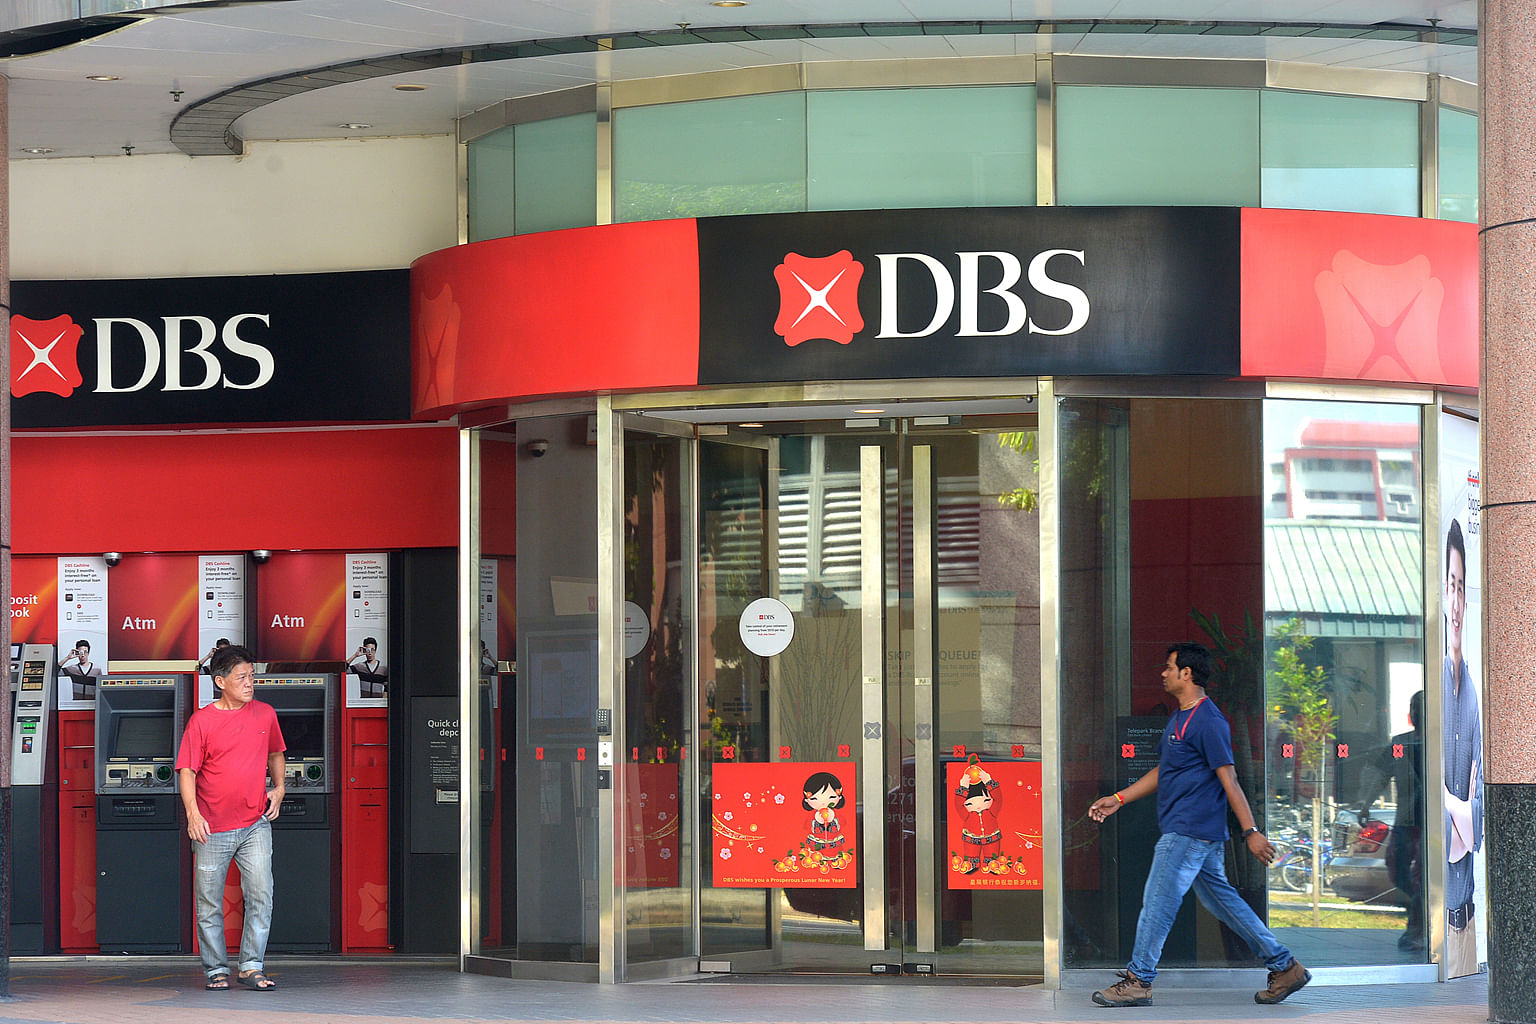 Fund managers are falling in love with local bank shares again, fuelling a run-up in DBS, OCBC and UOB. Topping the buy list was DBS, which attracted a net $619.4 million in purchases last month.